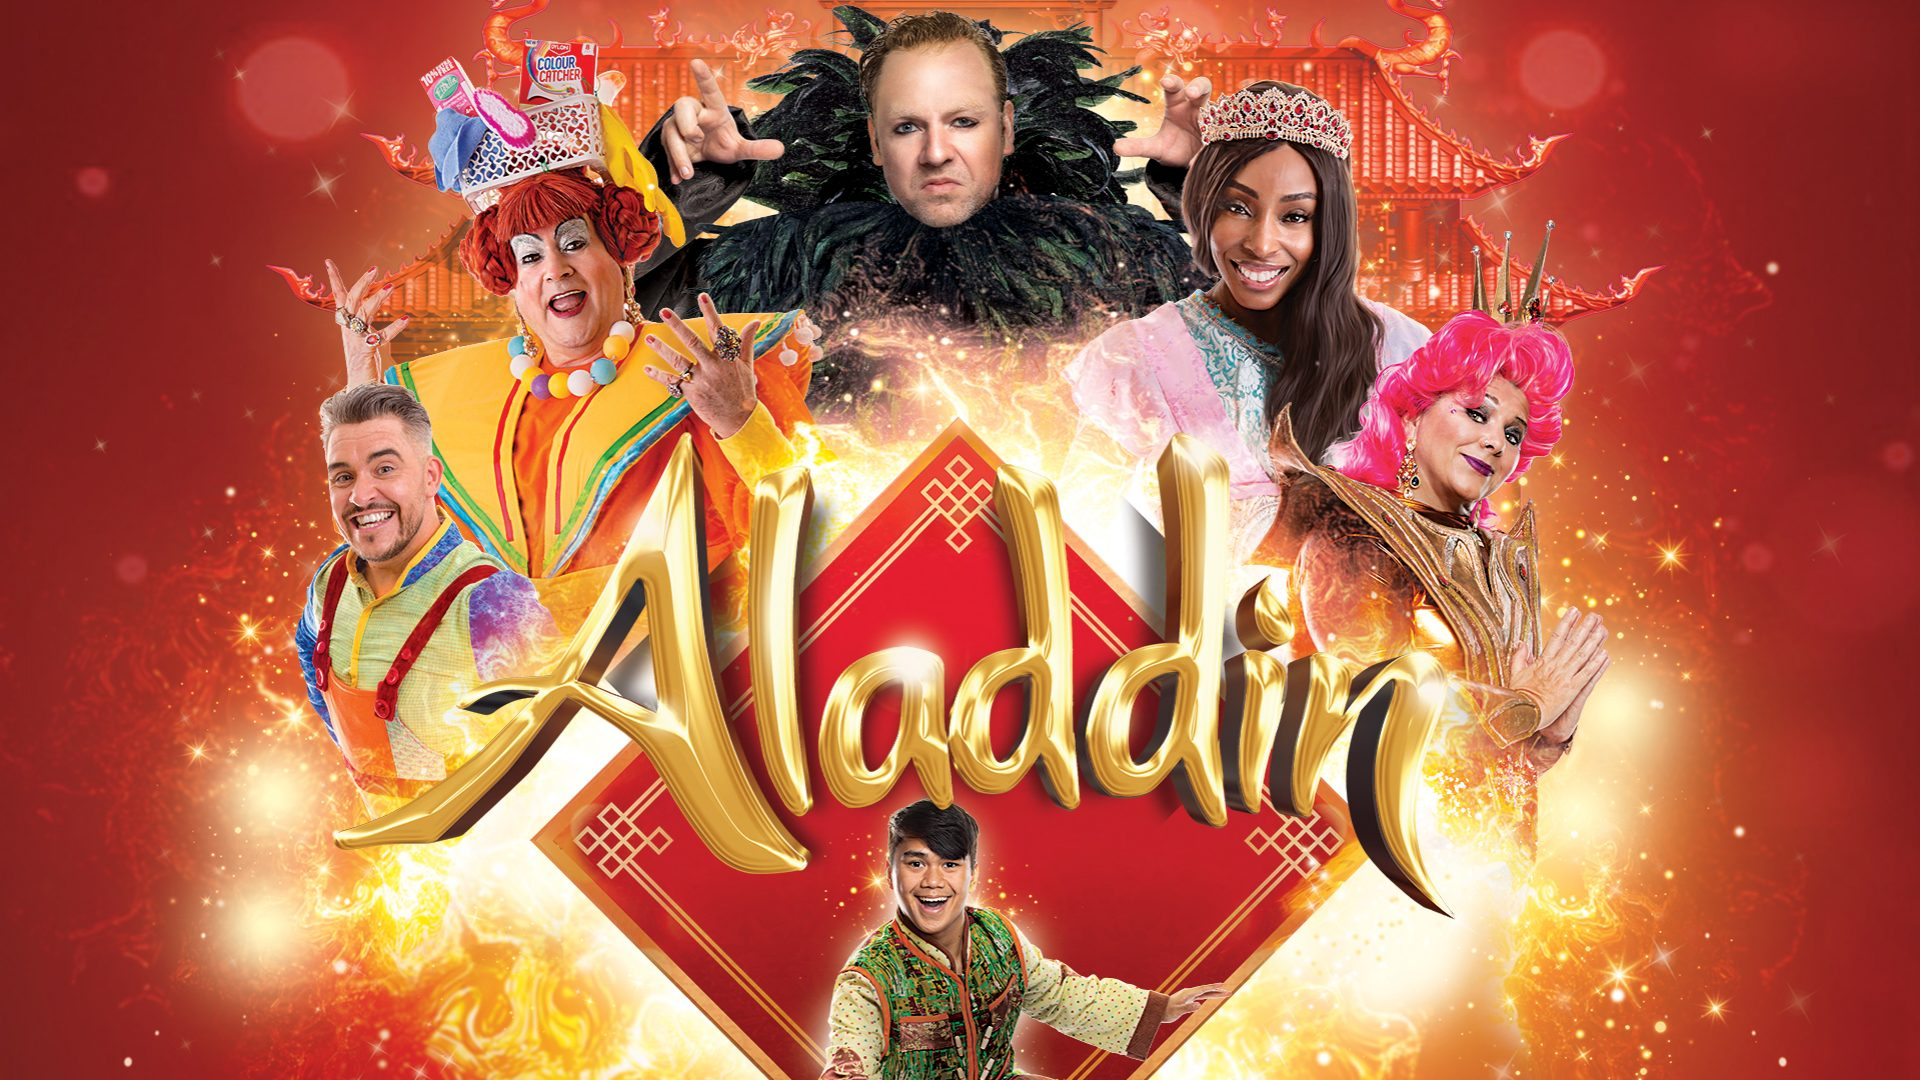 Book now for Peterborough's Panto!